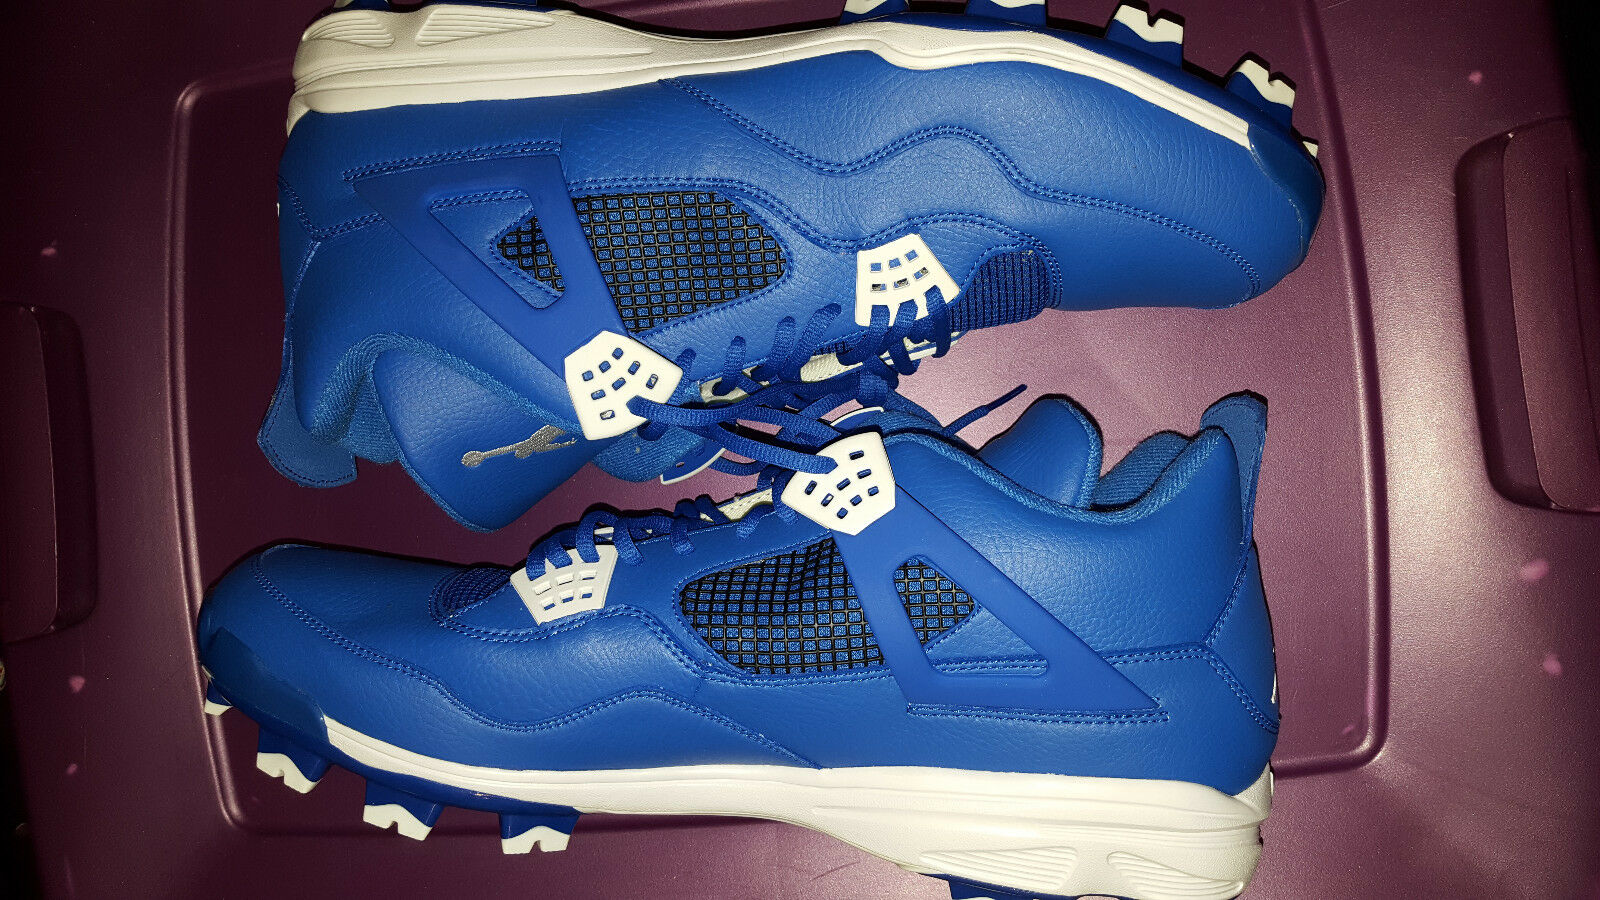 Nike Air Jordan Retro IV 4 MCS Men Baseball Cleats Size 16 807709-401 Royal Blue